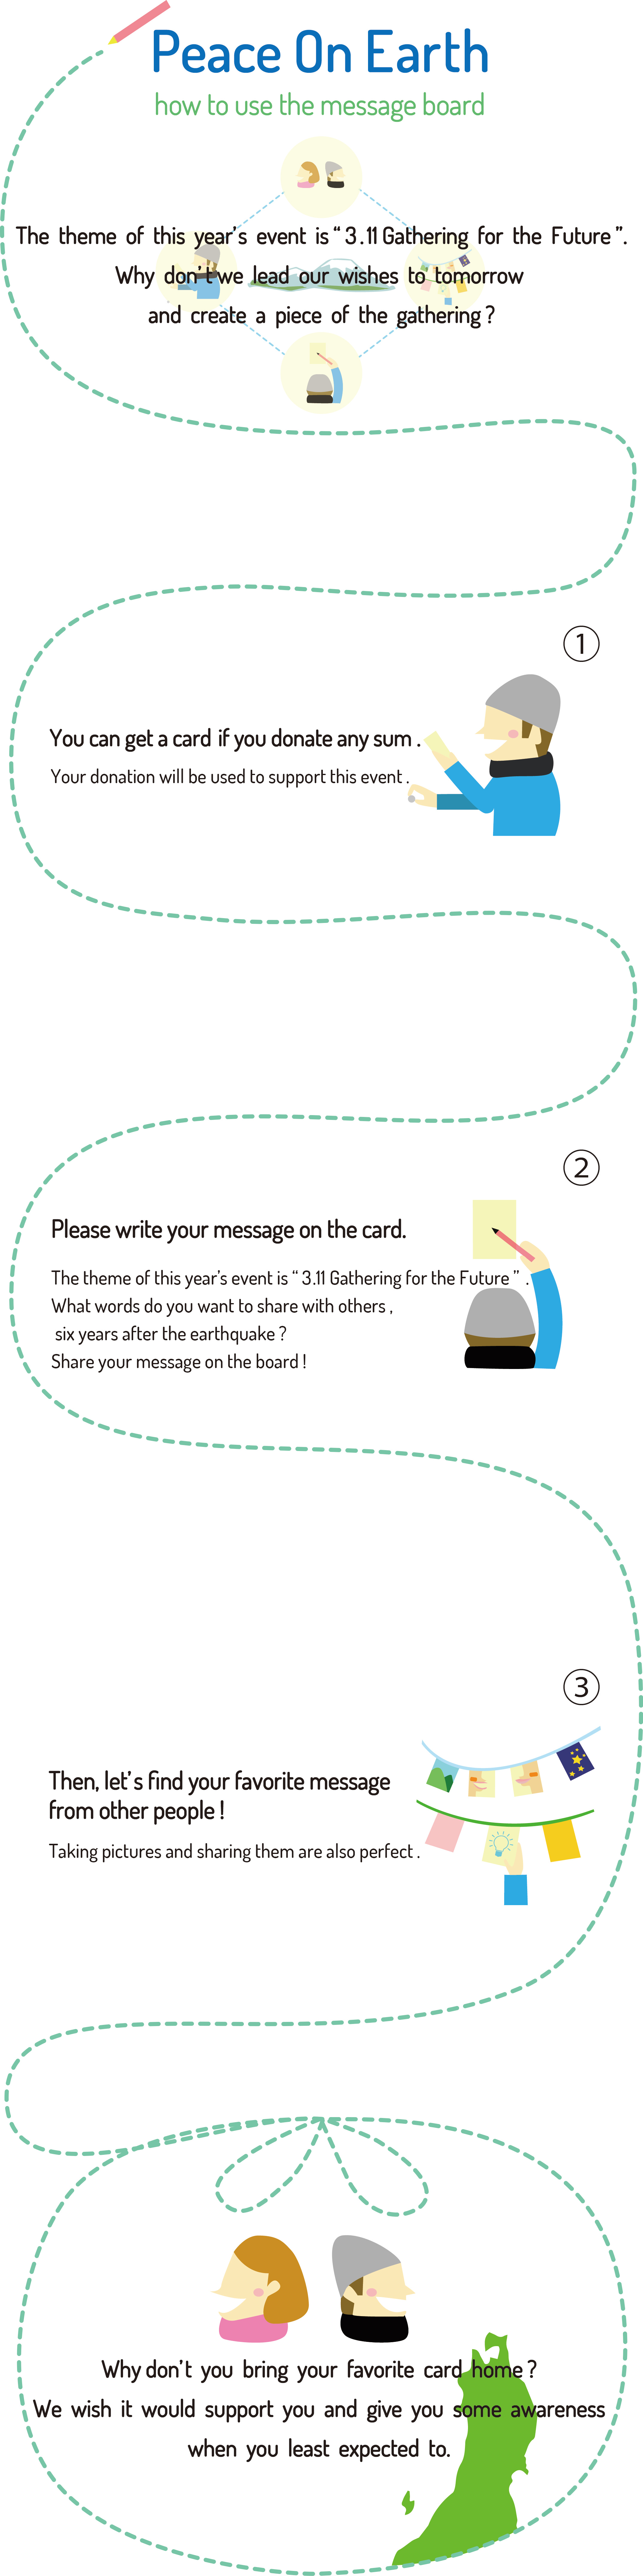 how to use the message card2017